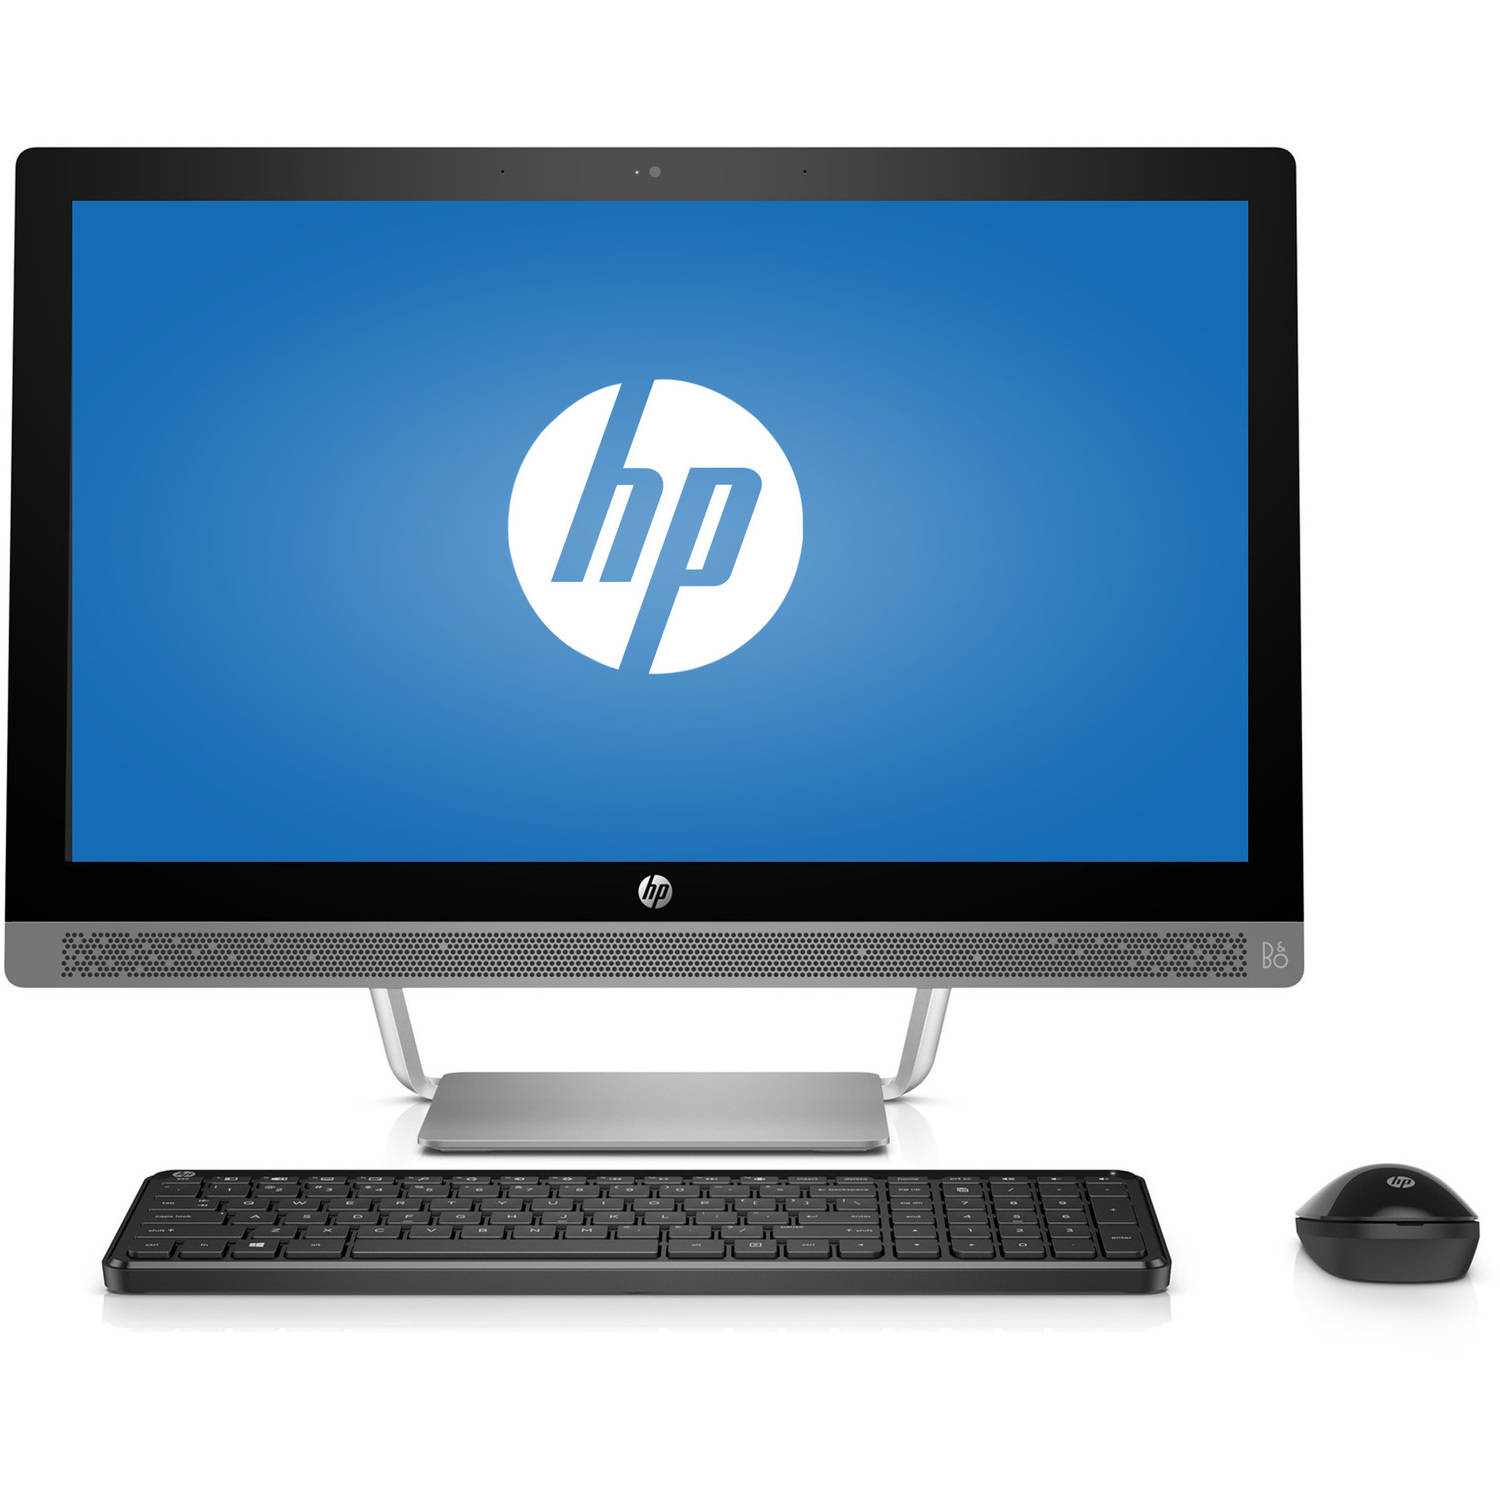 "HP Pavilion 24-a210 All-in-One Desktop PC with Intel Core i5-7400T Processor, 8GB Memory, 23.6"" Monitor,... by HP"